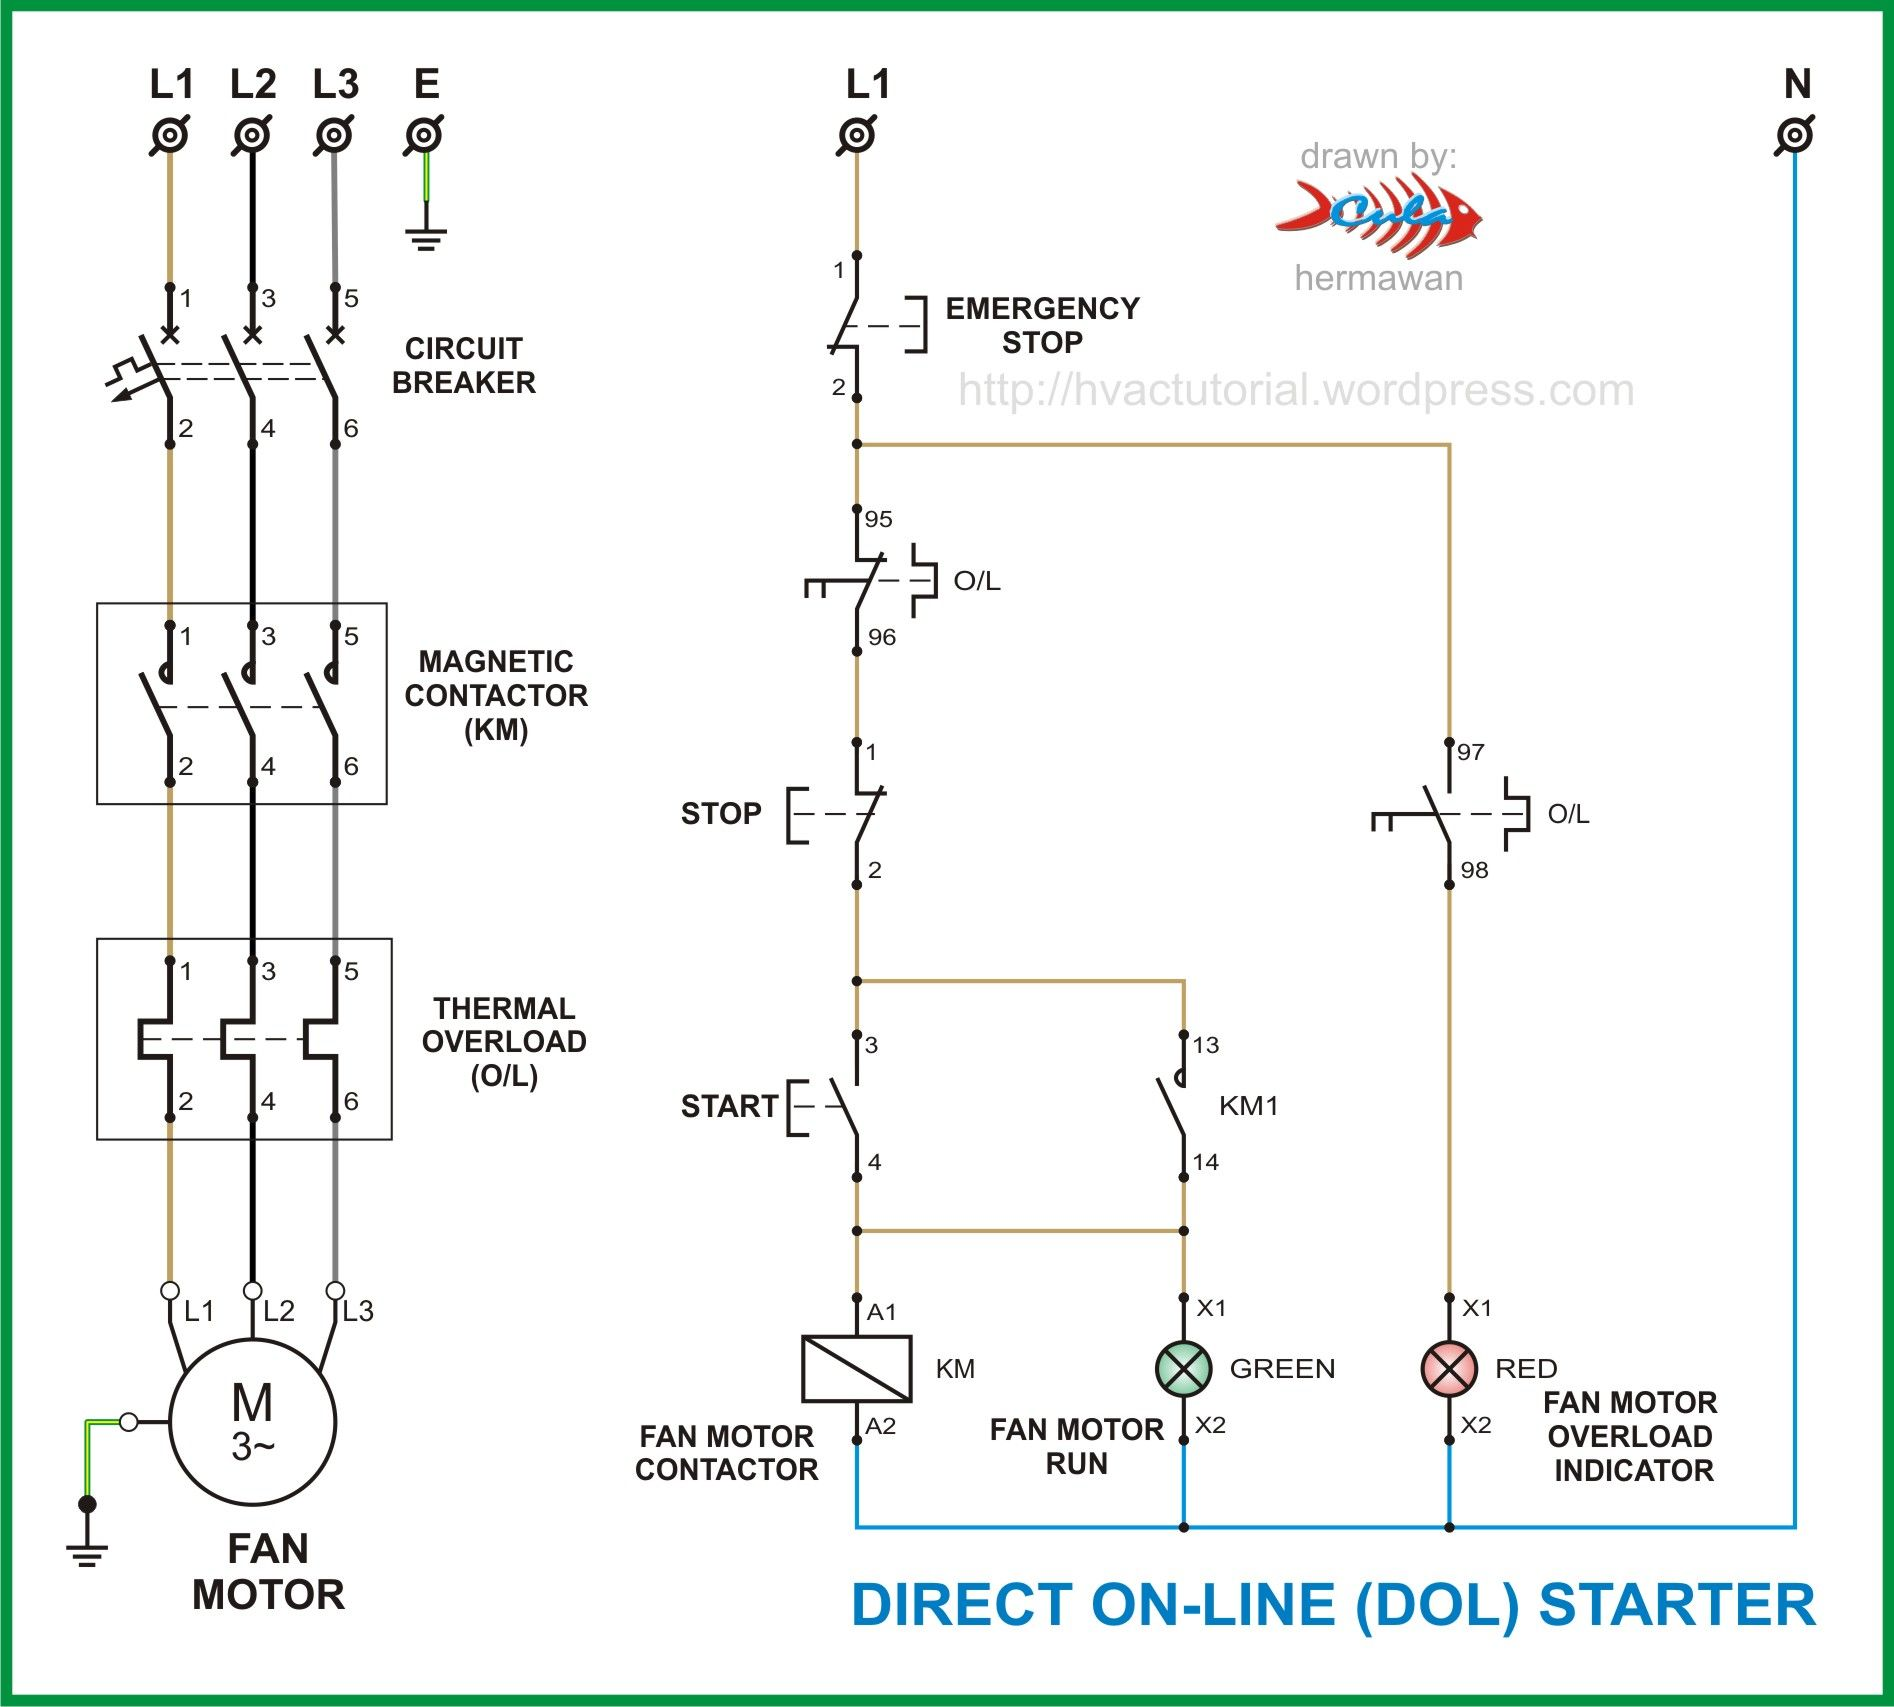 razor electric scooter wiring diagram also contactor relay wiring diagram furthermore simple electrical circuit diagram also [ 1894 x 1707 Pixel ]